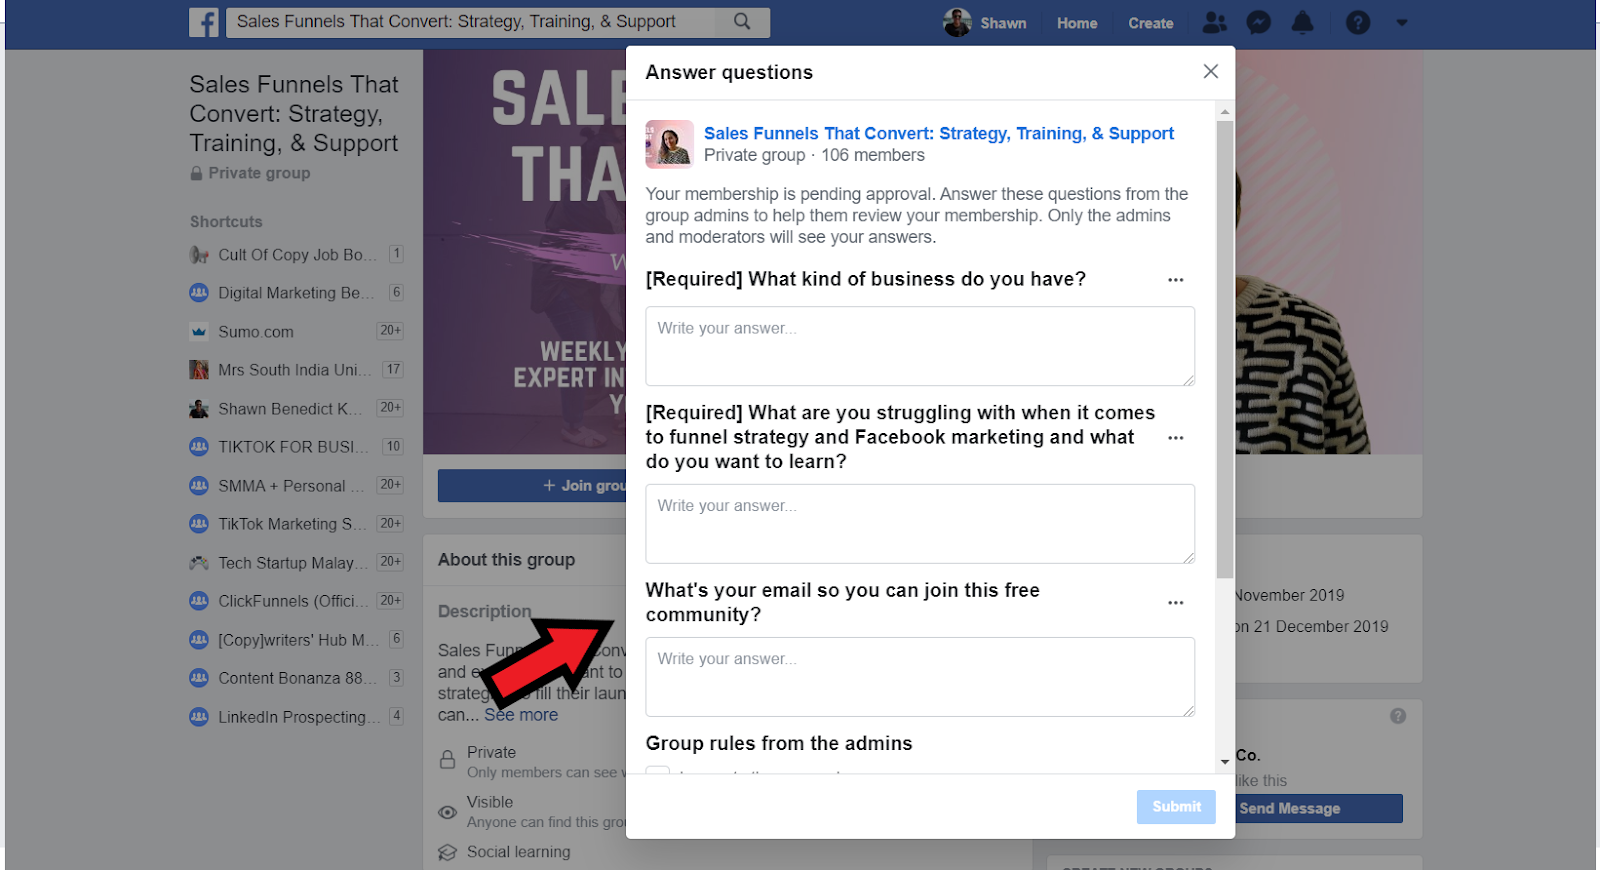 How To Build An Email List: Screenshot of questions to join Facebook group, which includes request for email address